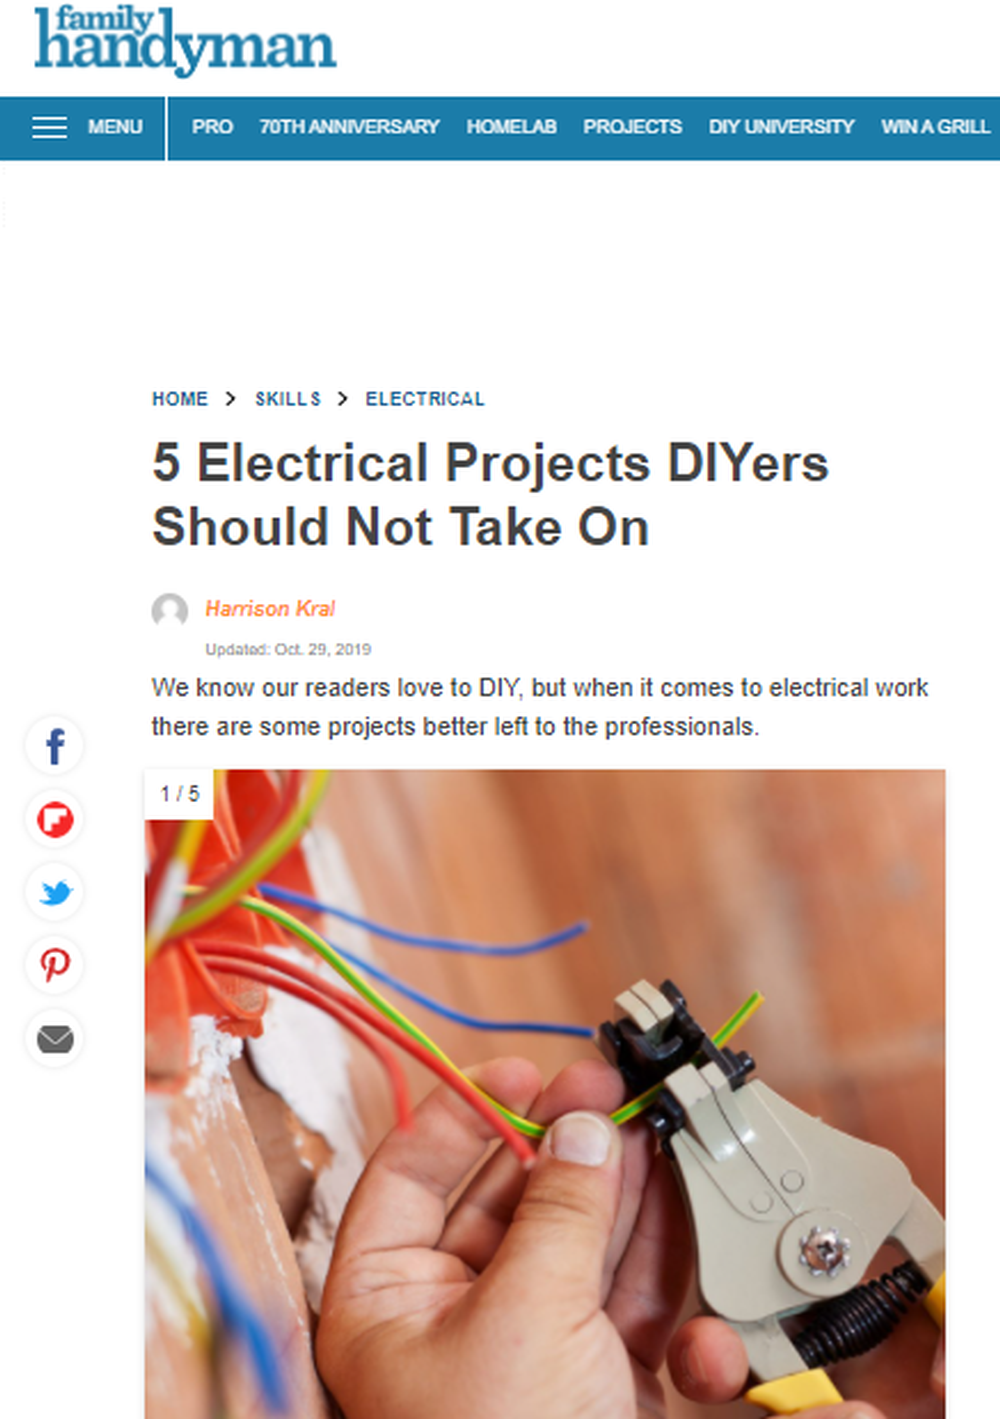 5-Electrical-Projects-DIYers-Should-Not-Take-On-The-Family-Handyman.png